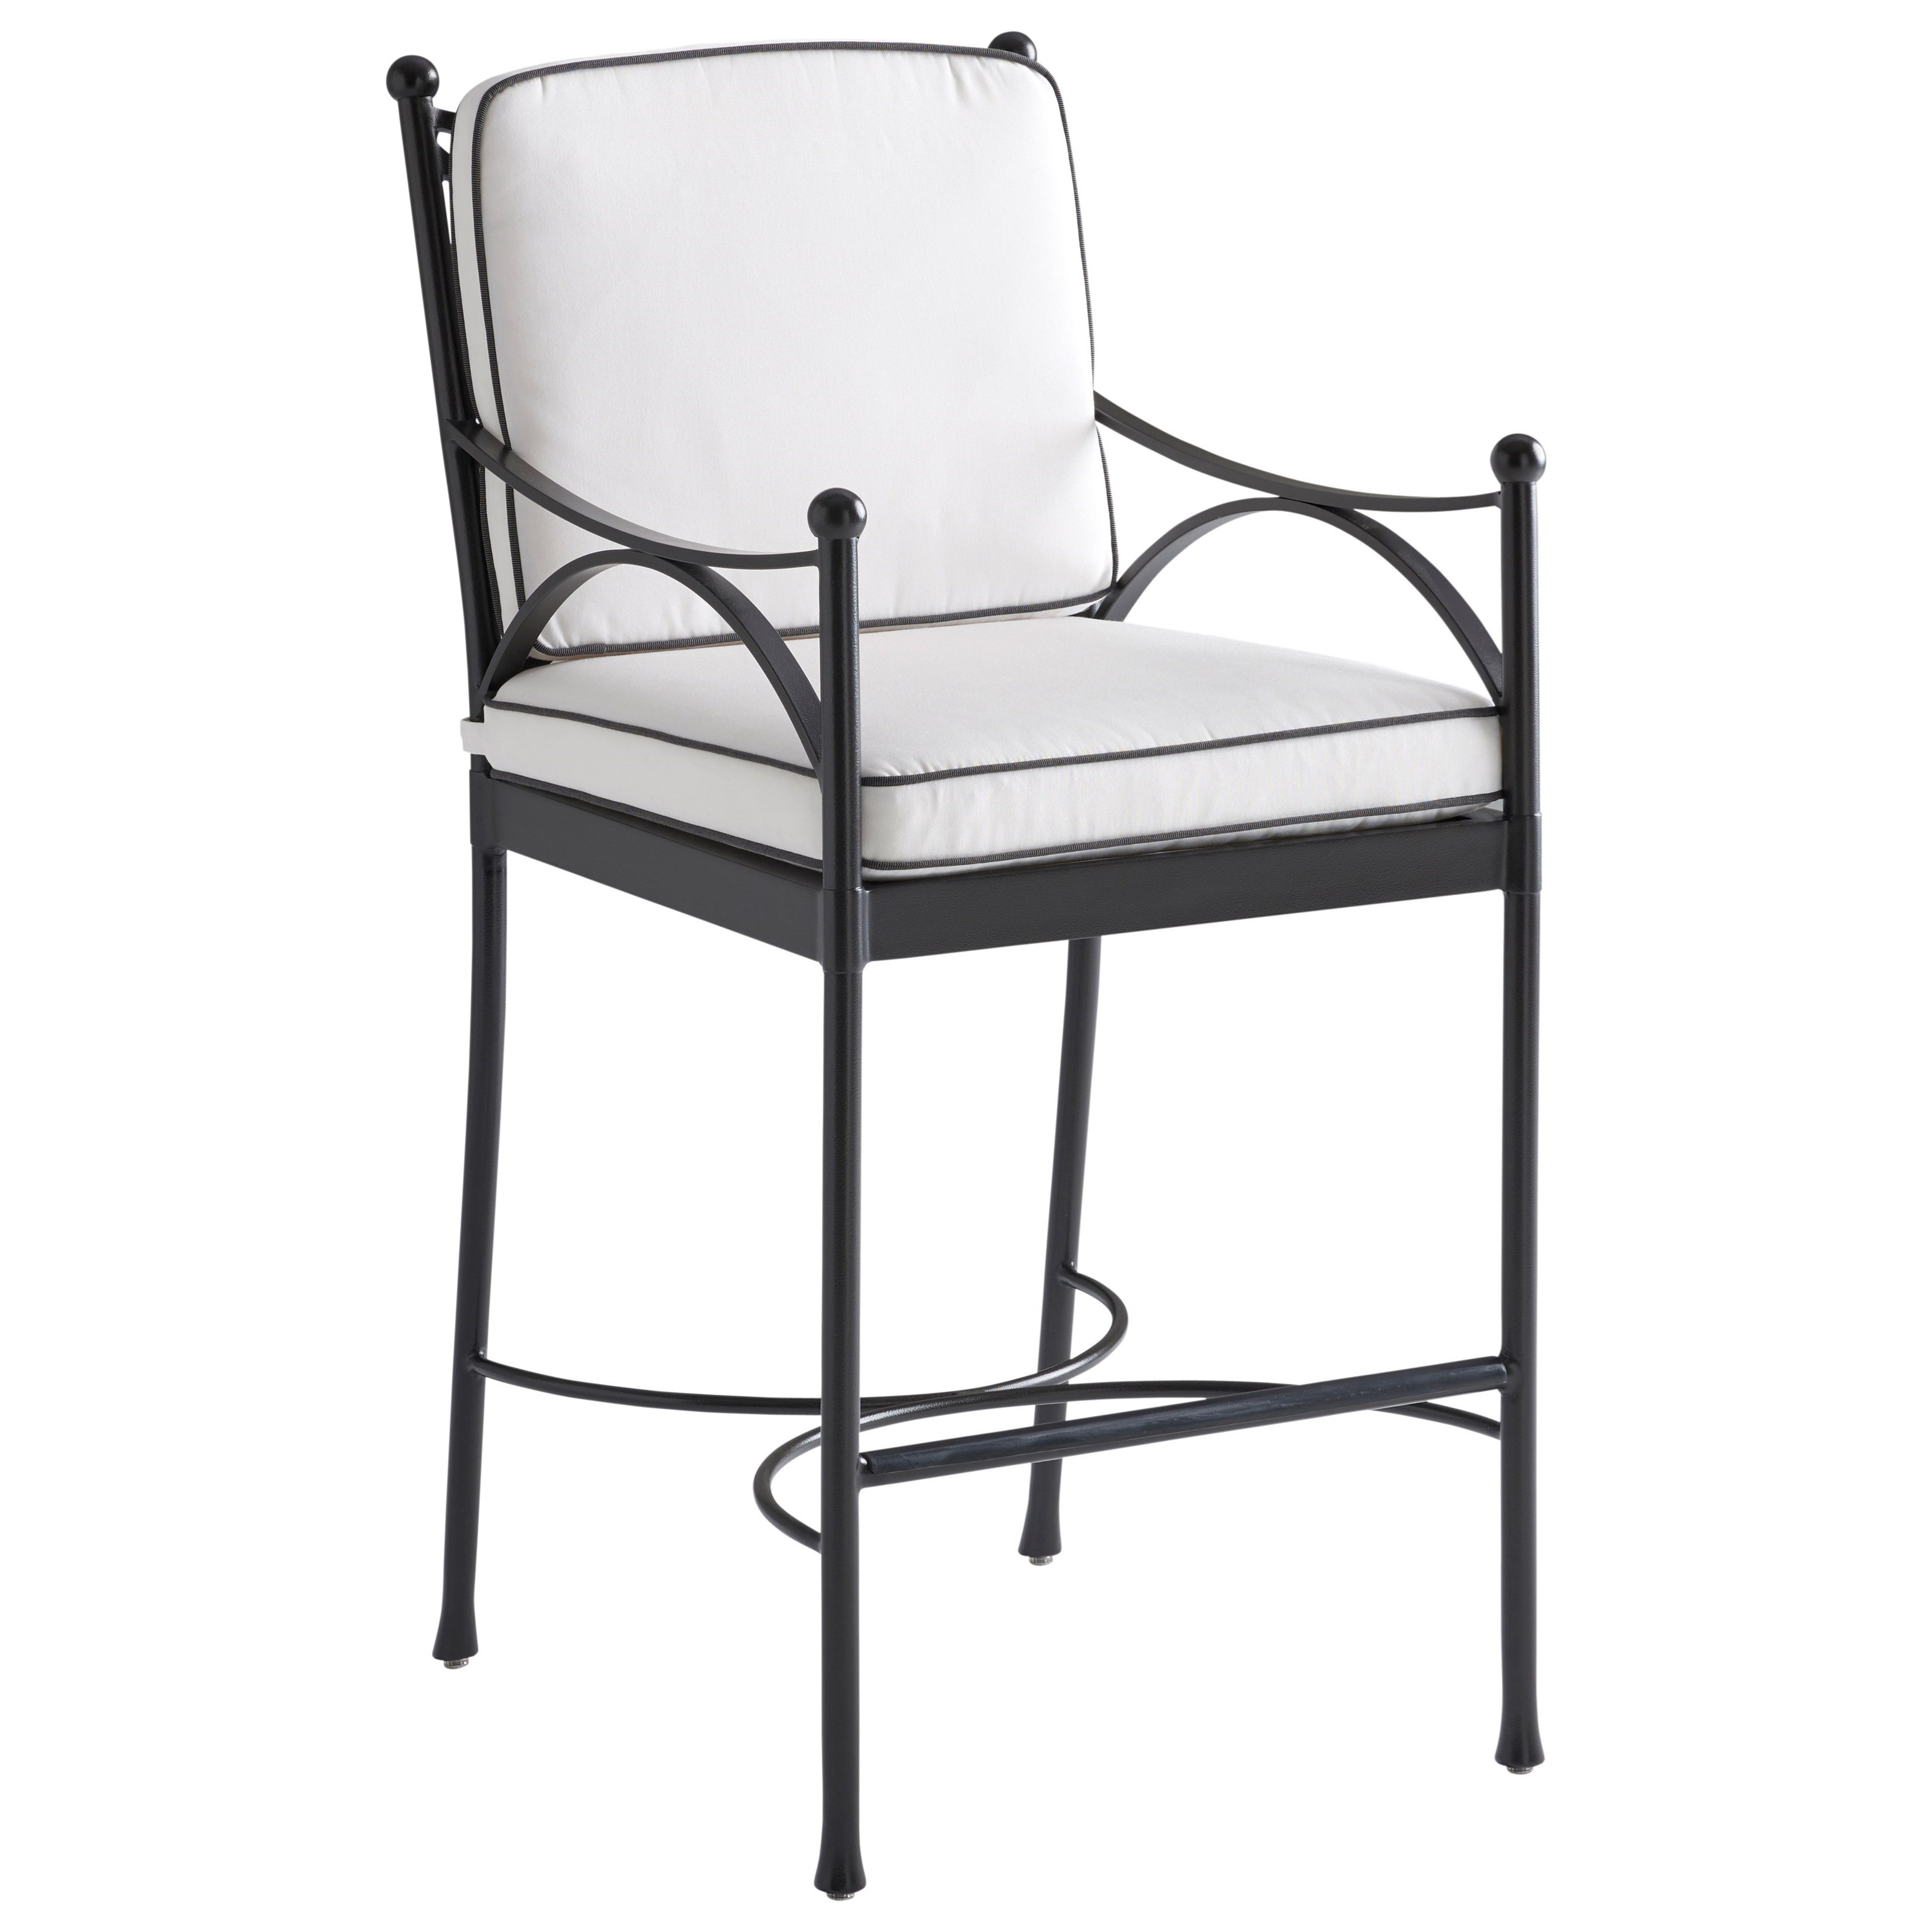 Pavlova Outdoor Bar Stool by Tommy Bahama Outdoor Living at Jacksonville Furniture Mart